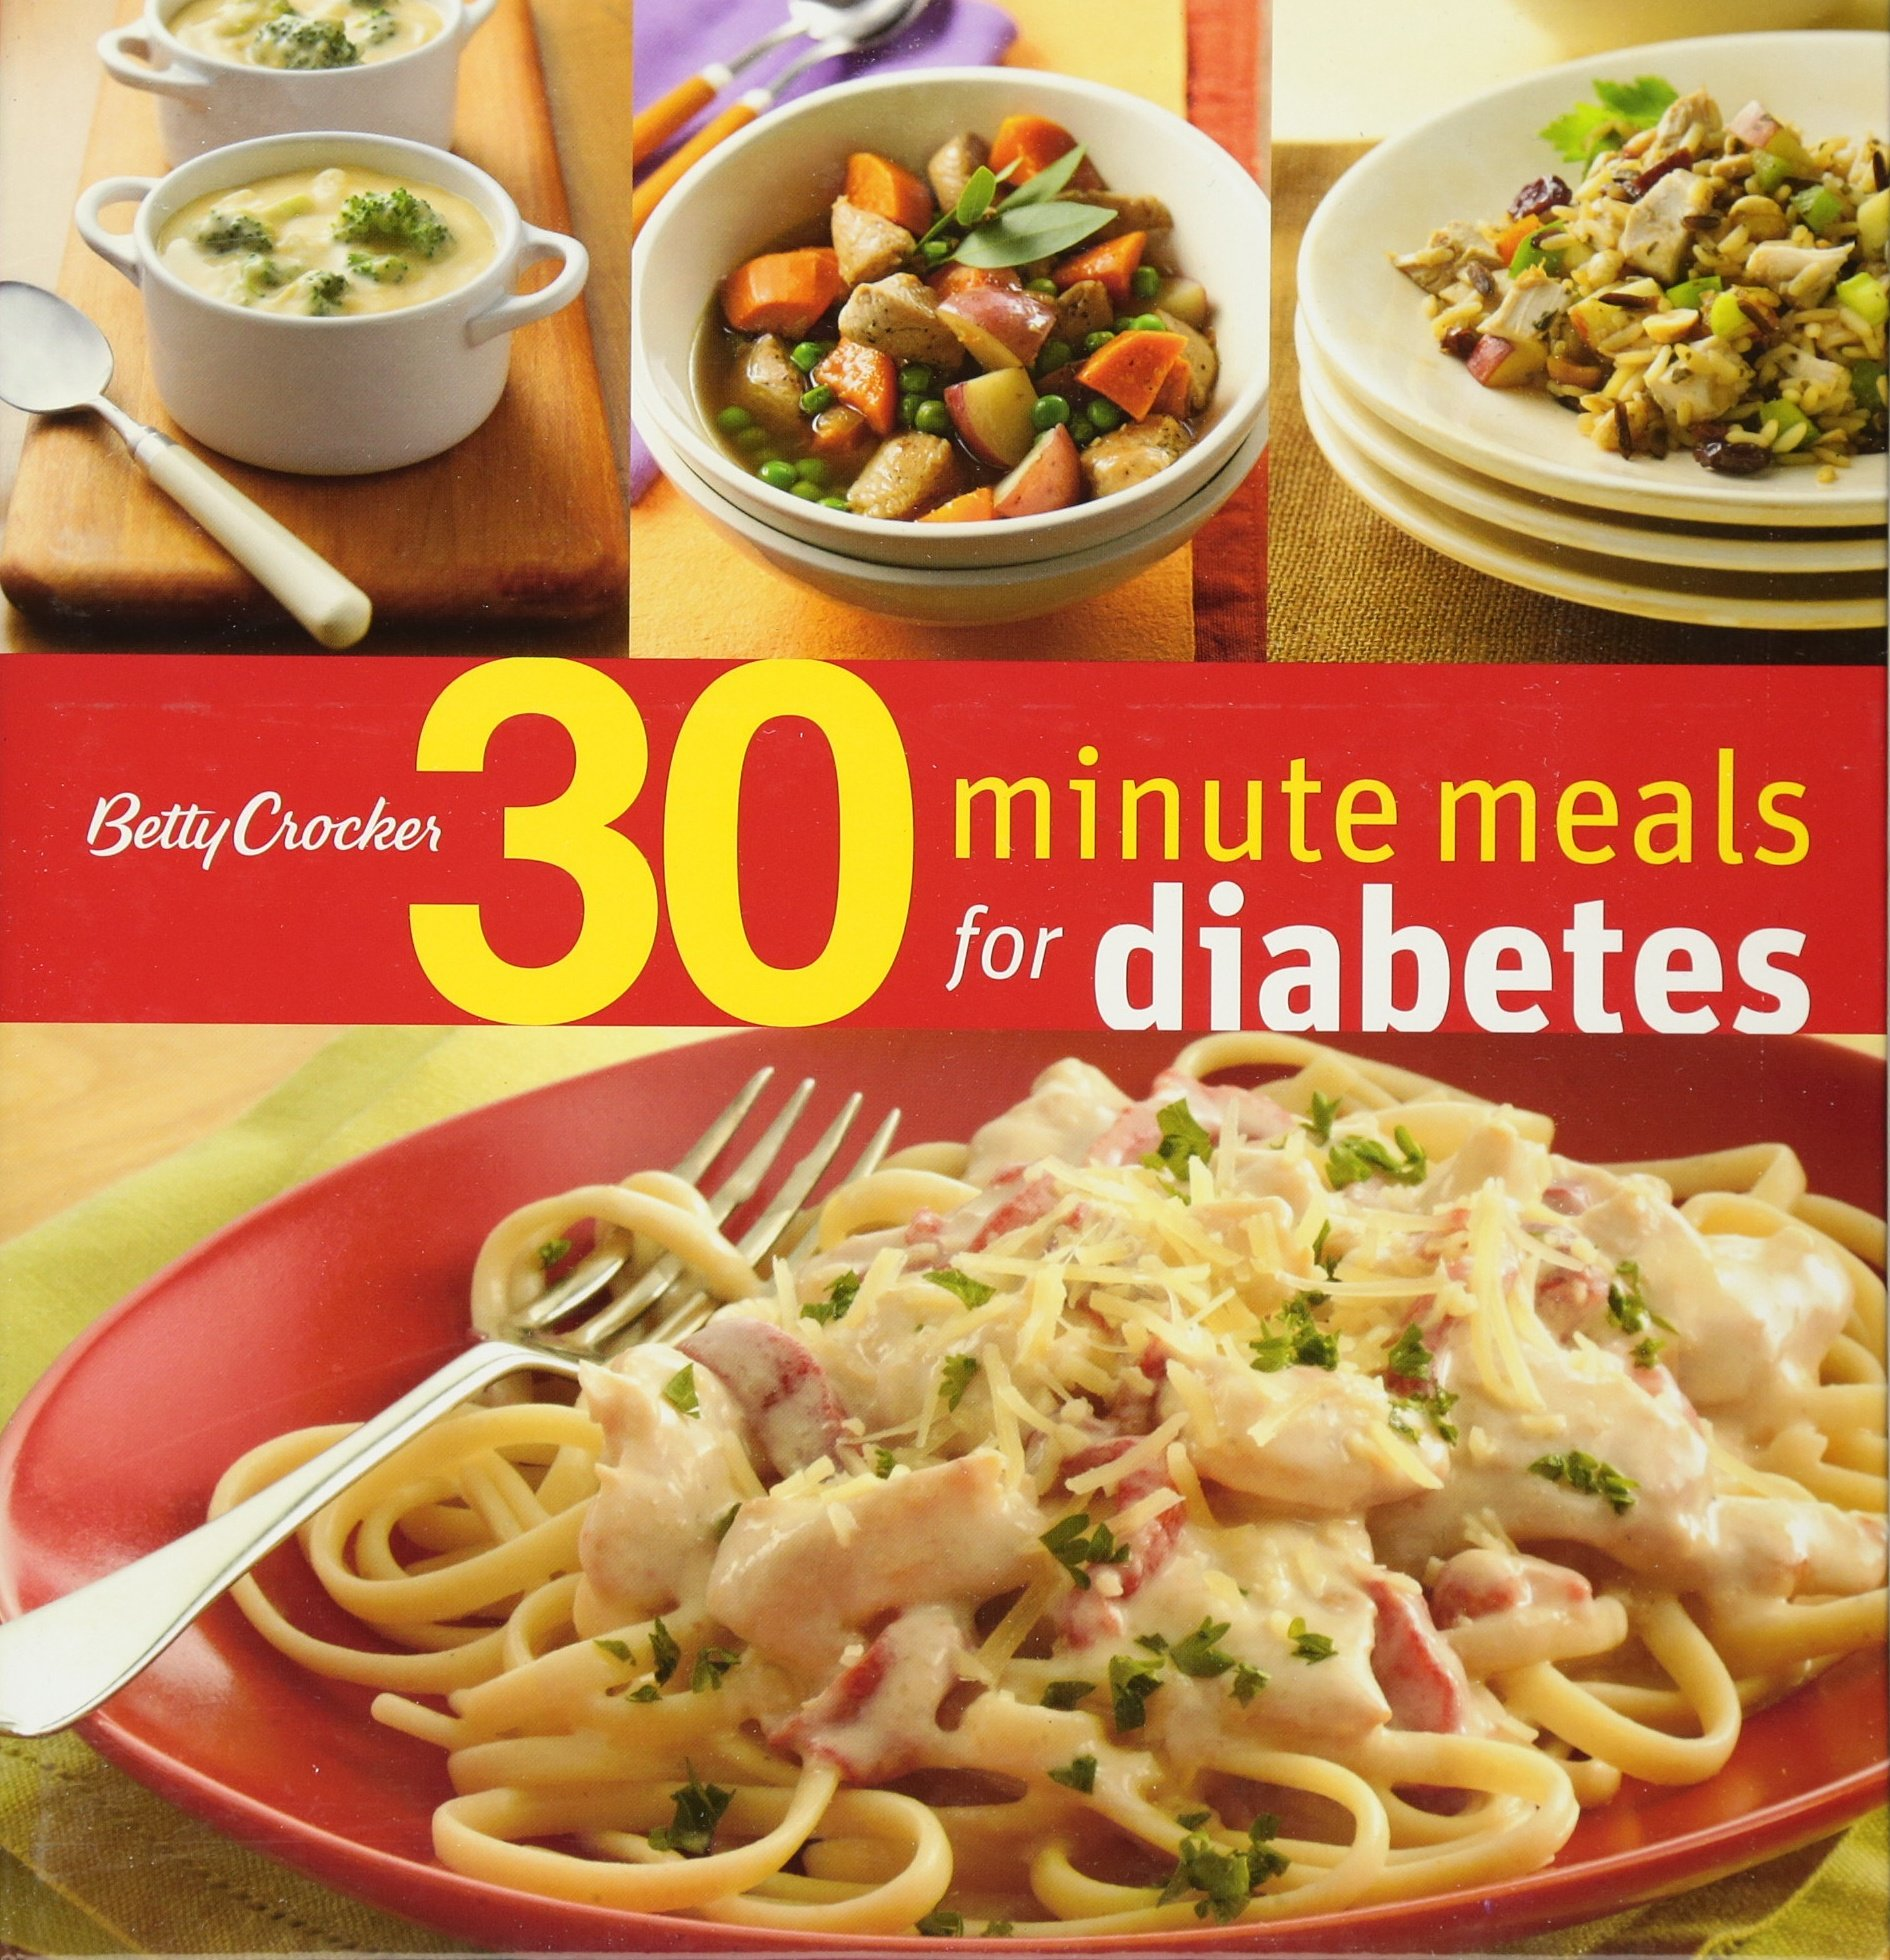 Betty crocker 30 minute meals for diabetes betty crocker cooking betty crocker 30 minute meals for diabetes betty crocker cooking betty crocker 9780470191170 amazon books forumfinder Gallery